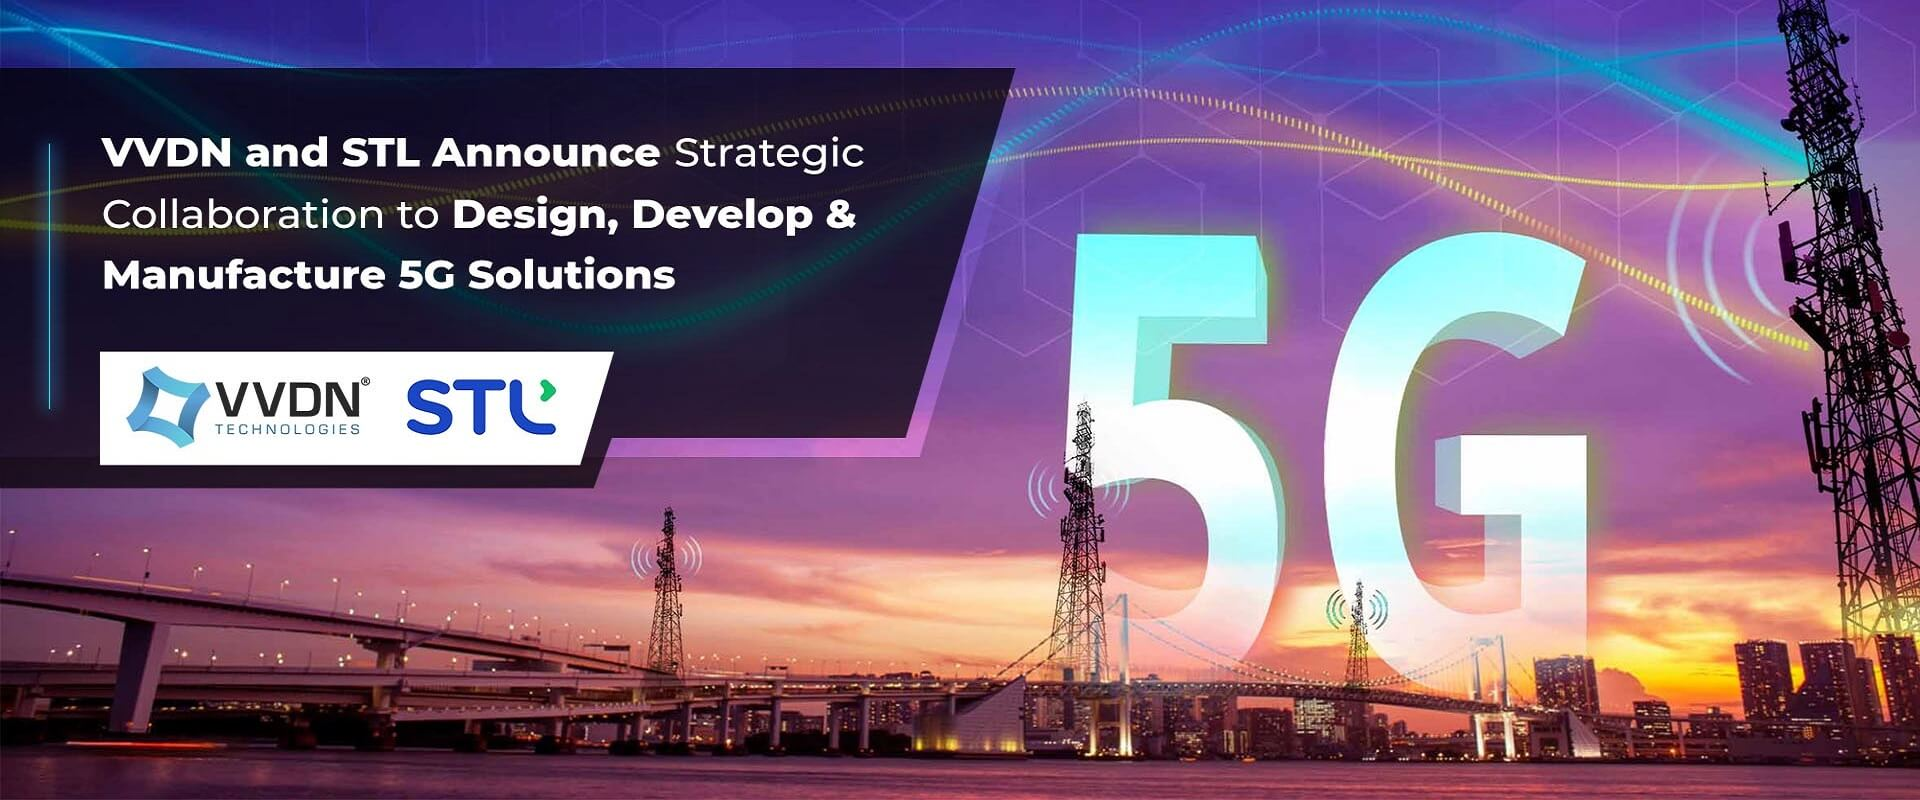 VVDN and STL announce strategic collaboration to design, develop and manufacture 5G solutions